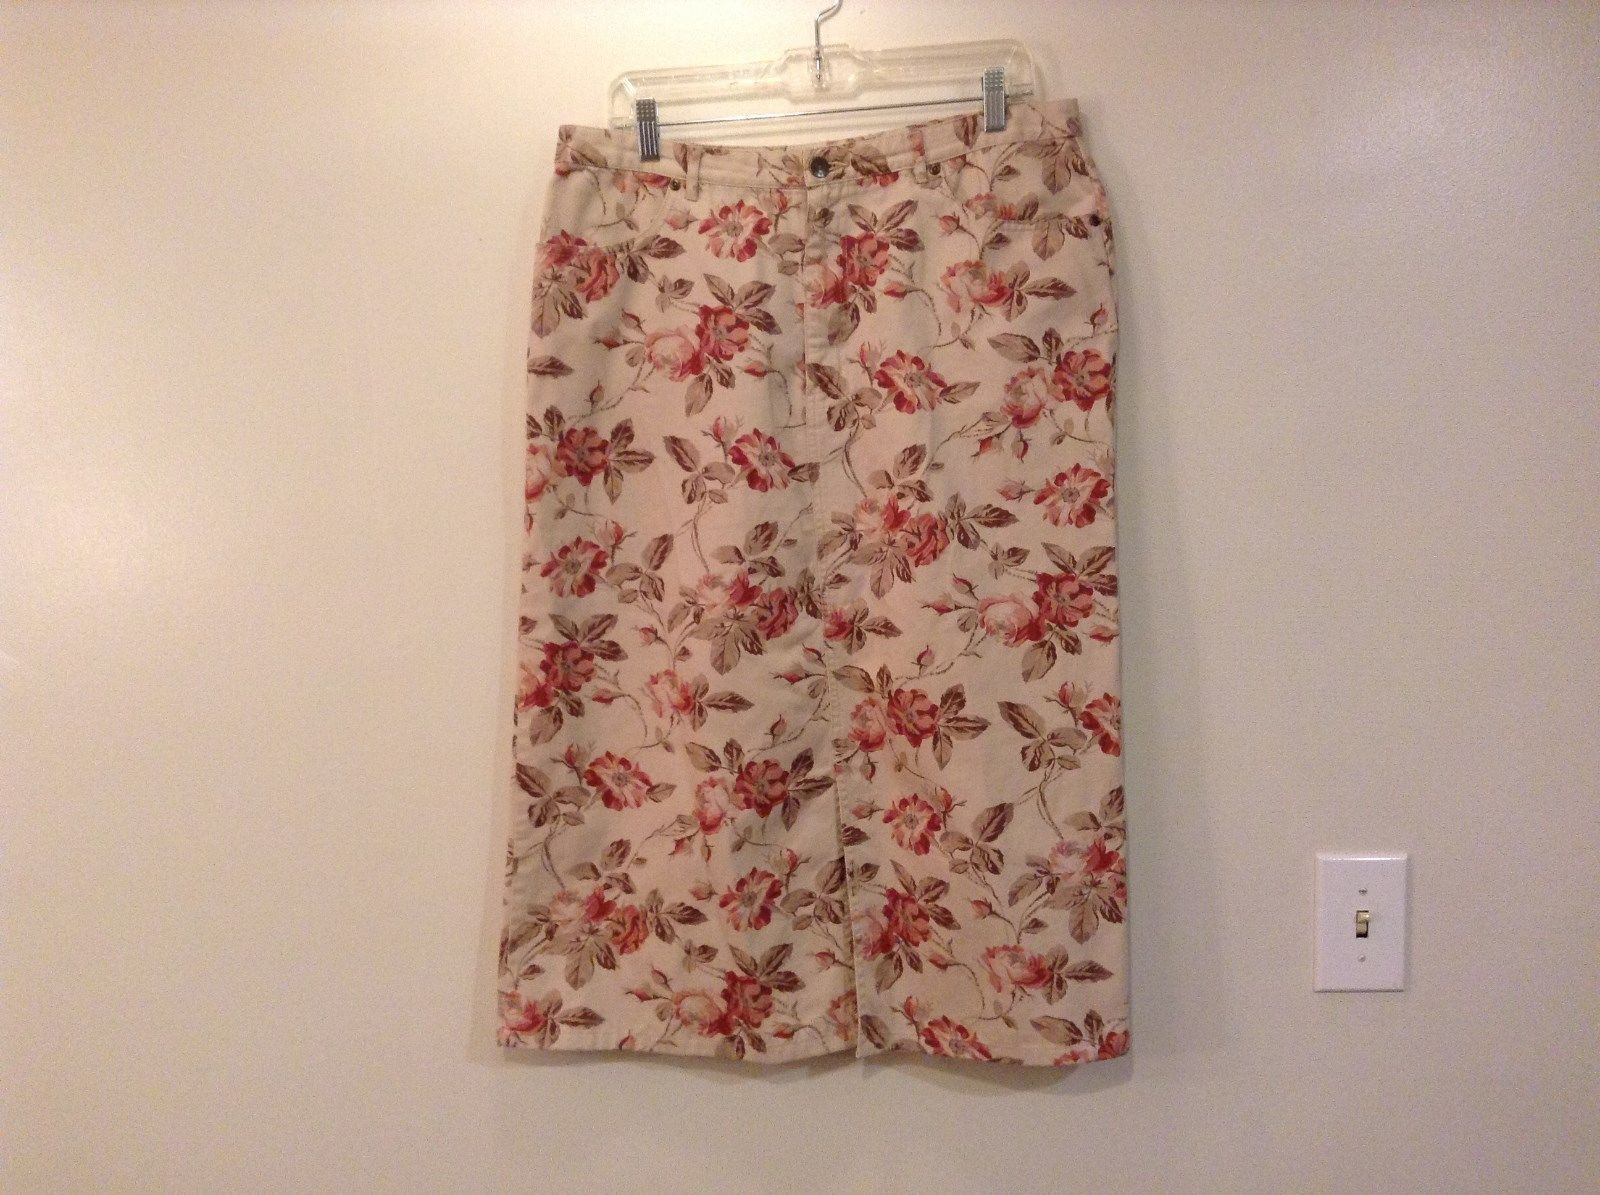 Pink and Tan Floral Pattern Eddie Bauer Cotton Skirt Size 16 Zipper and Button